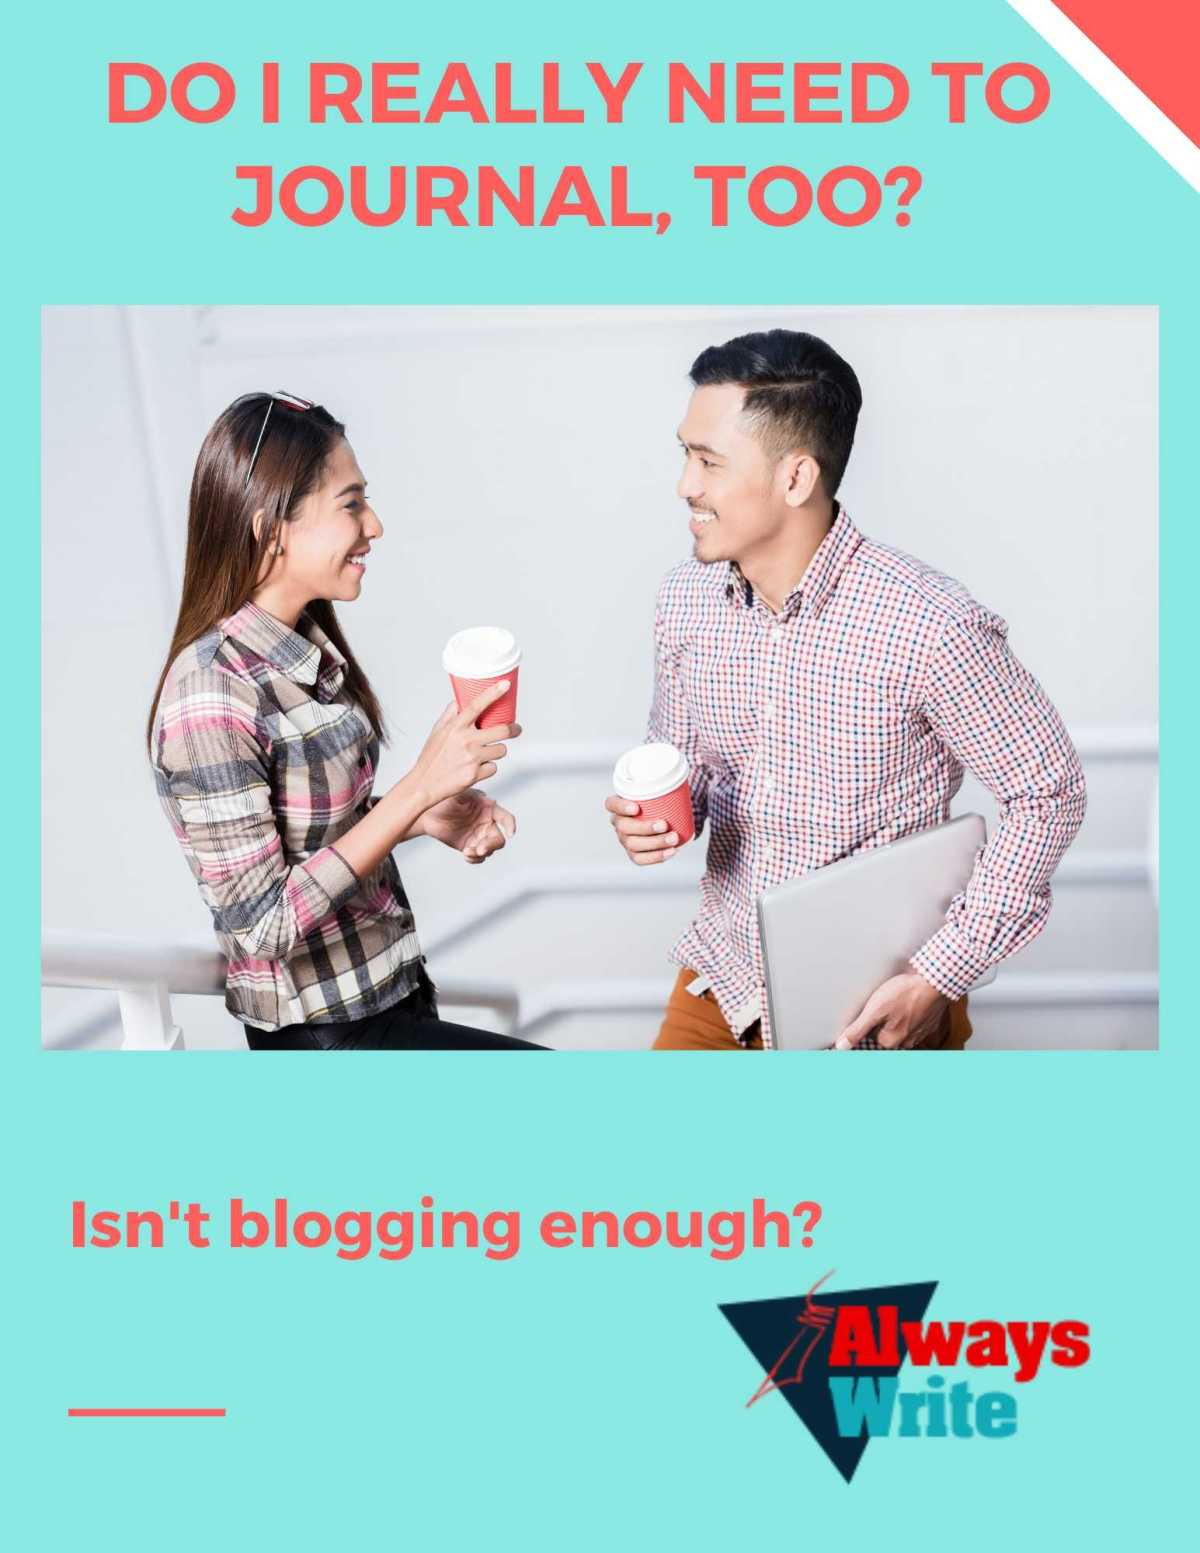 9 Tips to Use Your Blogging Journal Guaranteed to Make Your Blog 100% More Interesting